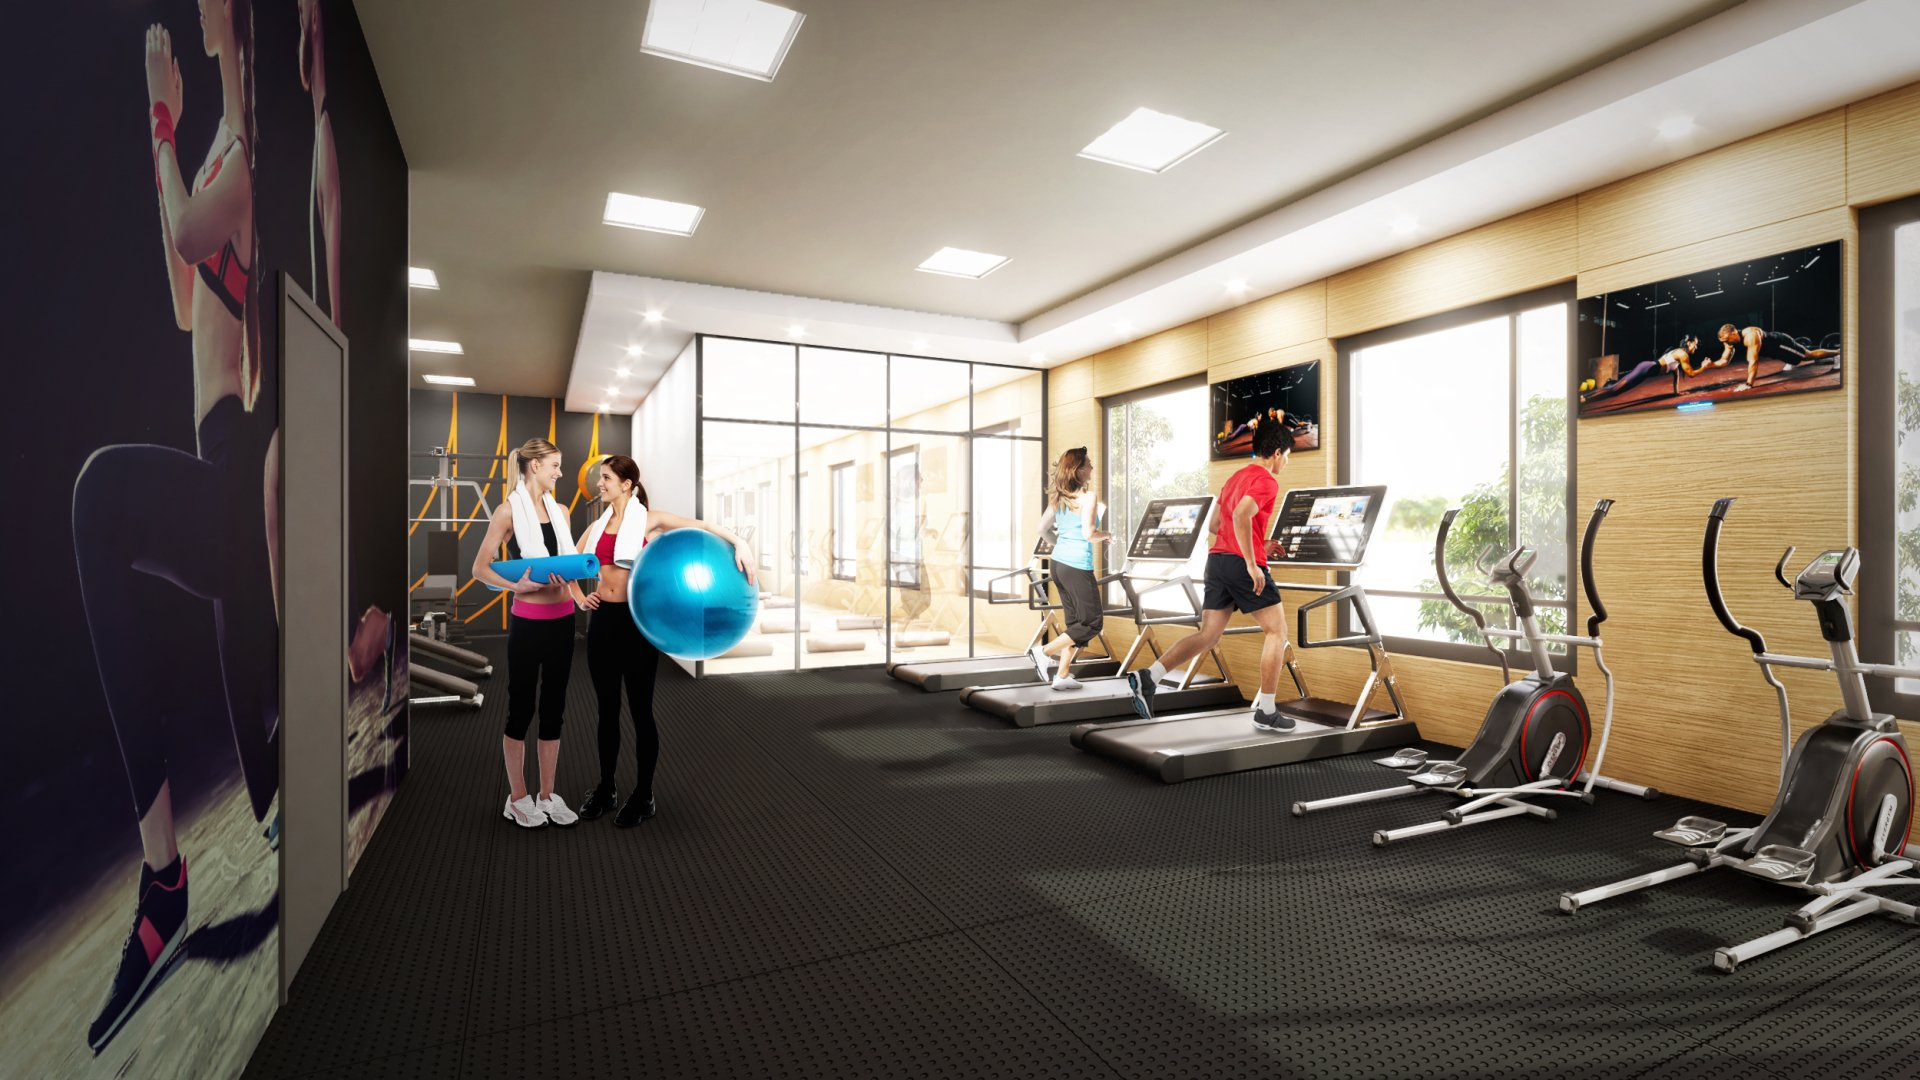 nahid kennedy - exercise room with people